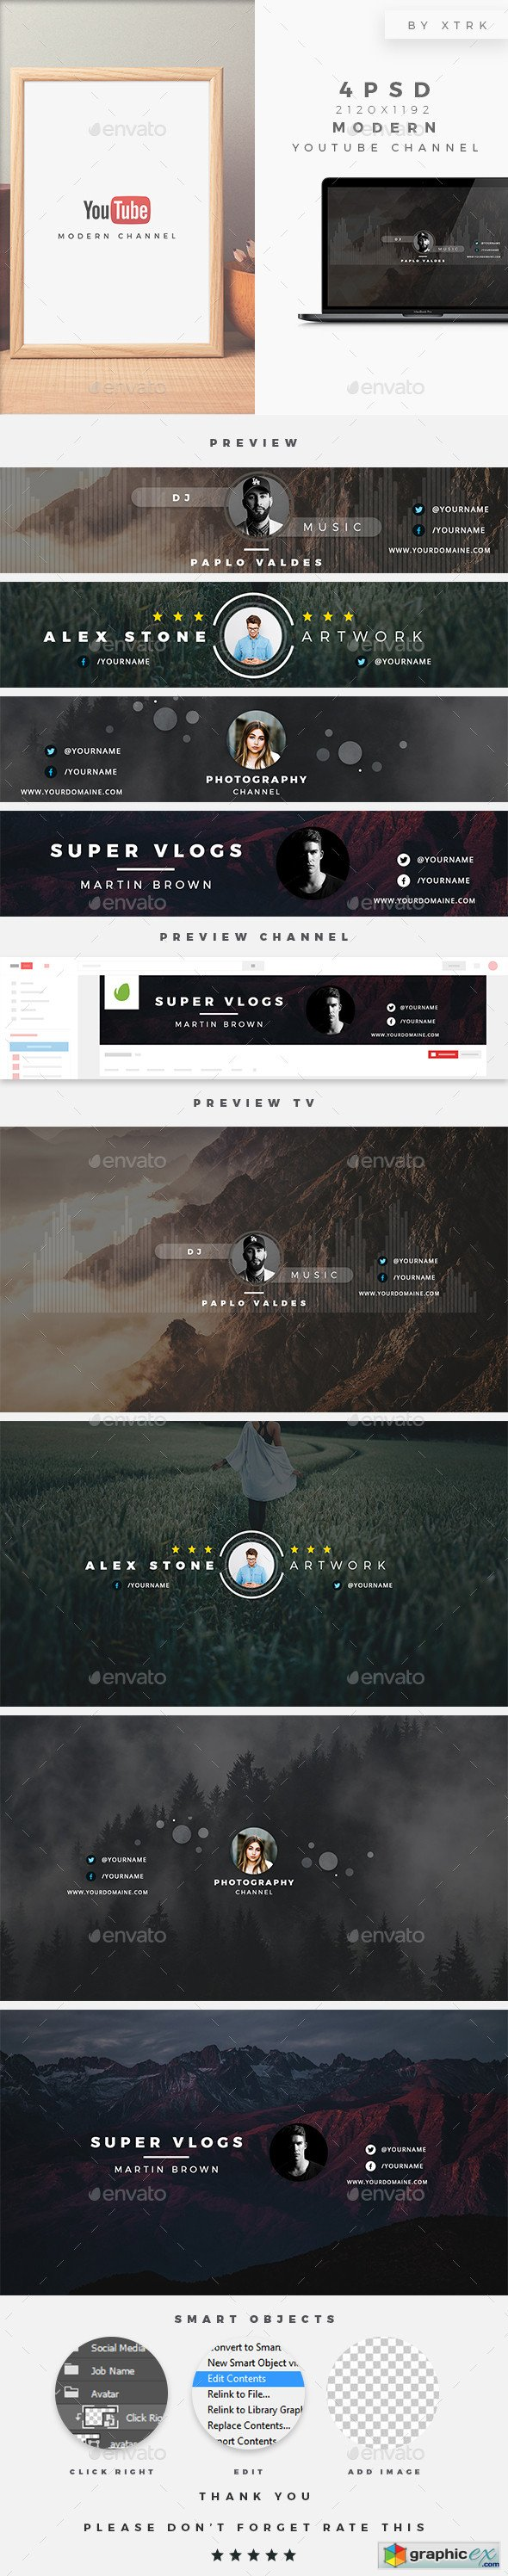 Modern Youtube Channel » Free Download Vector Stock Image